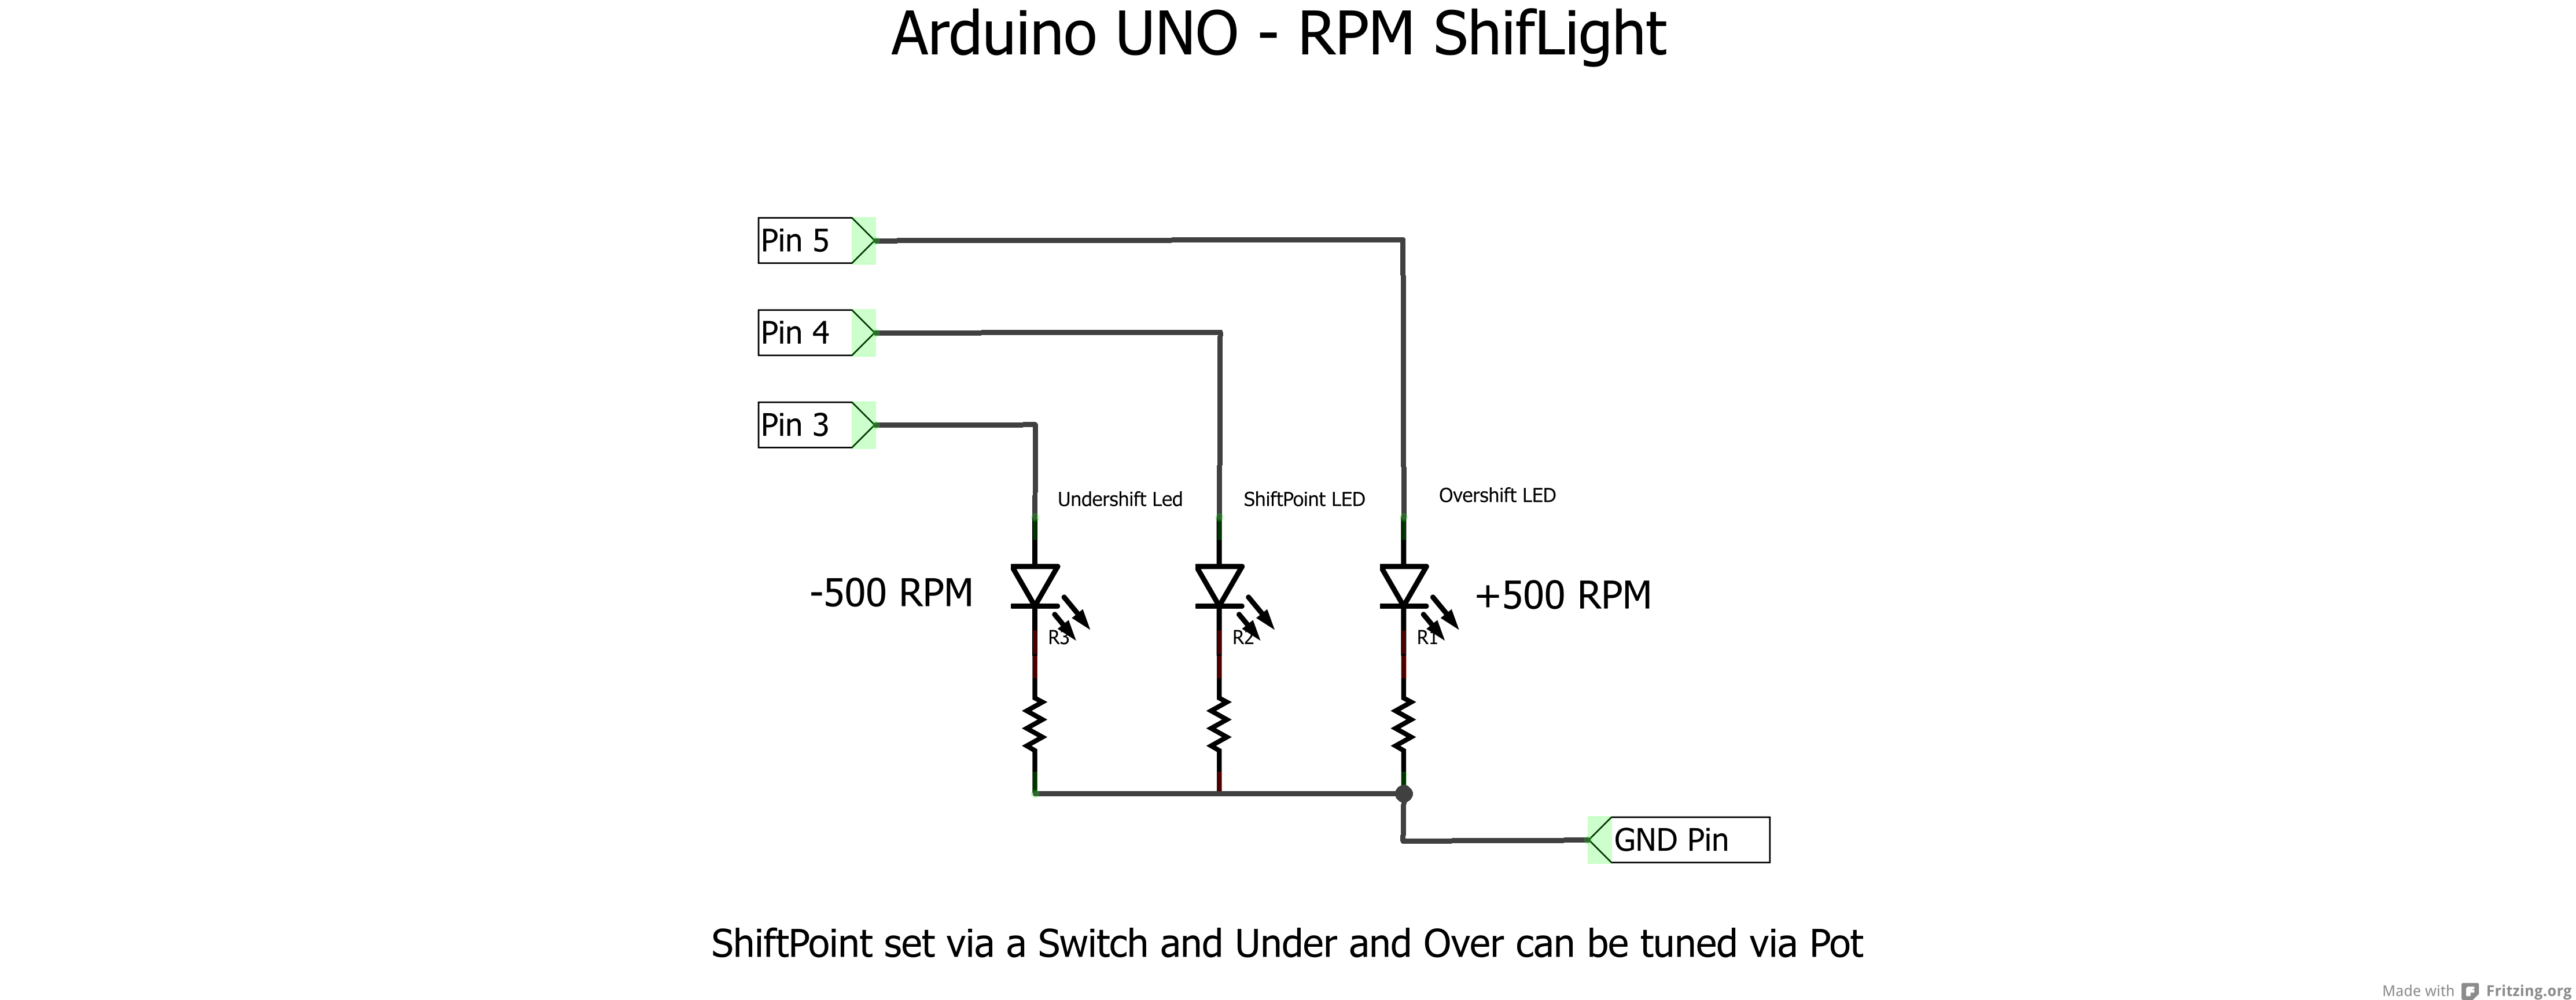 4 Way Insteon Wiring Diagram additionally Single Pole Double Throw Toggle Switch Wiring Diagram furthermore 3 Pole Single Throw Toggle Switch Wiring Diagram additionally Wiring Diagram For 120v Led Light furthermore Double Pull Throw Switch Schematic. on wiringdiagramsforswitches